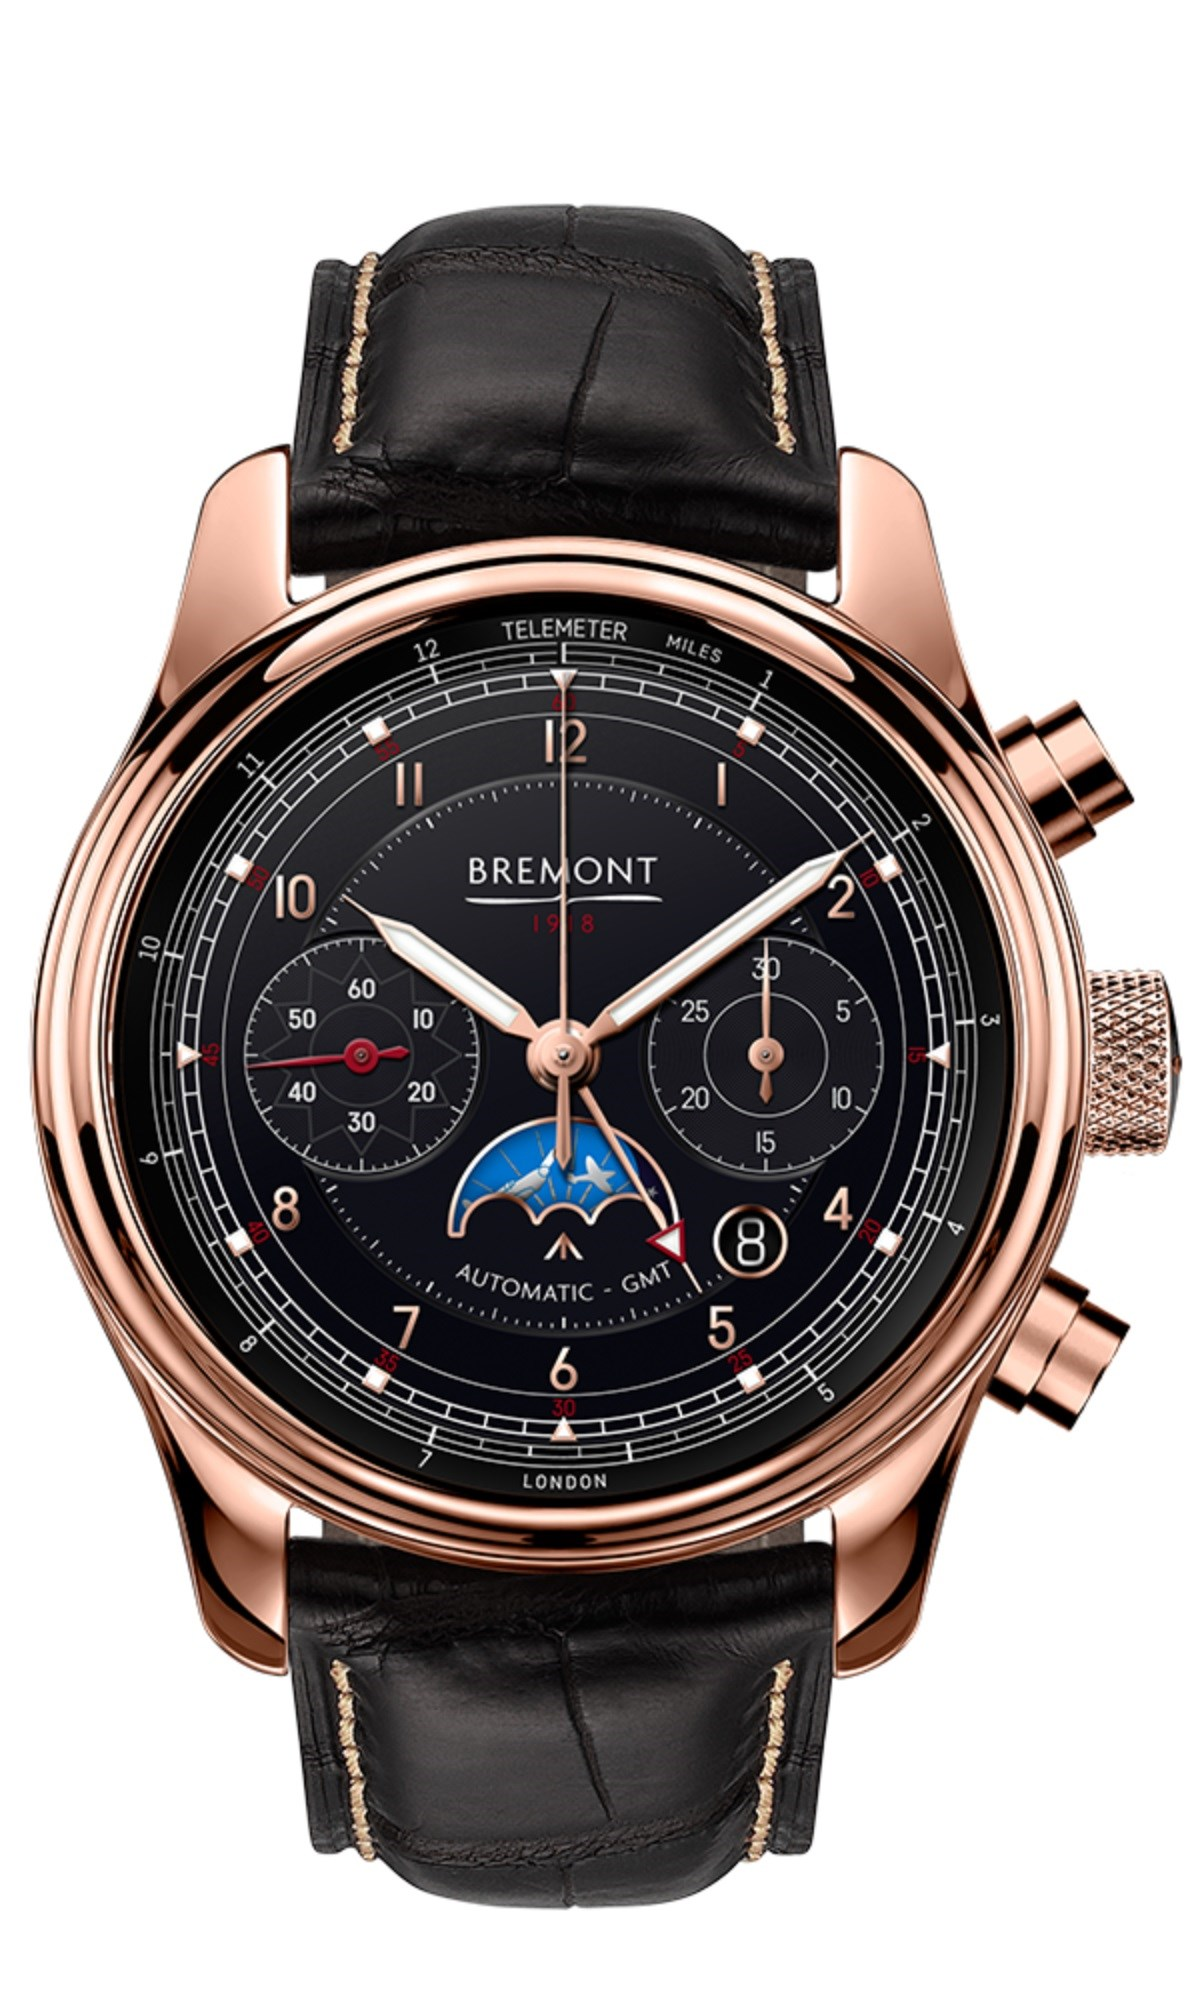 Bremont 1918 limited edition watch